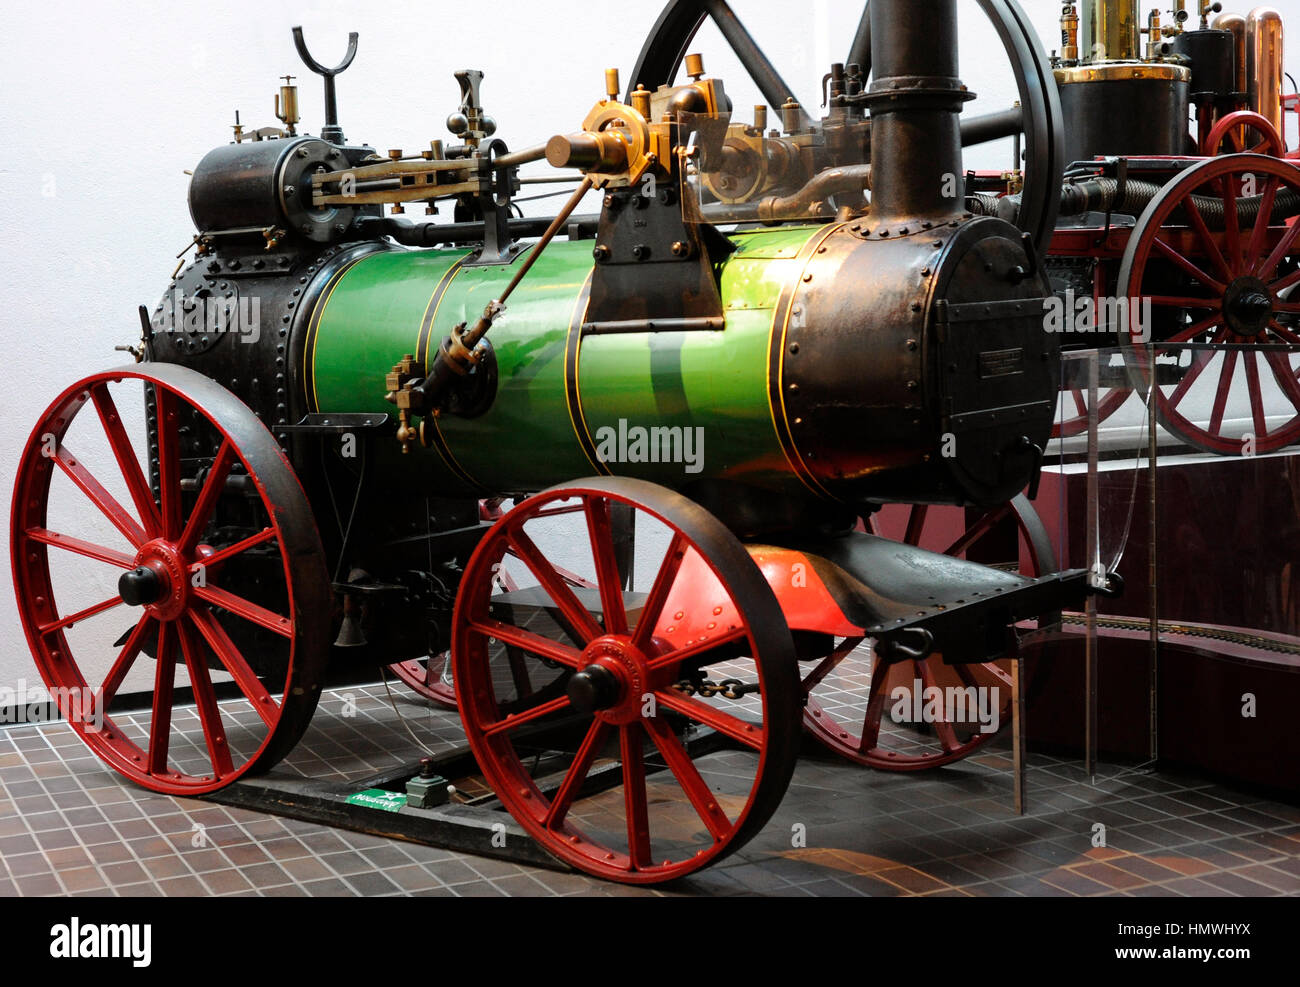 Steam tractor. Marshall & Sons, Co, Gainsborough, England. 1896. Maritime and Science Museum. Malmo. Sweden. - Stock Image